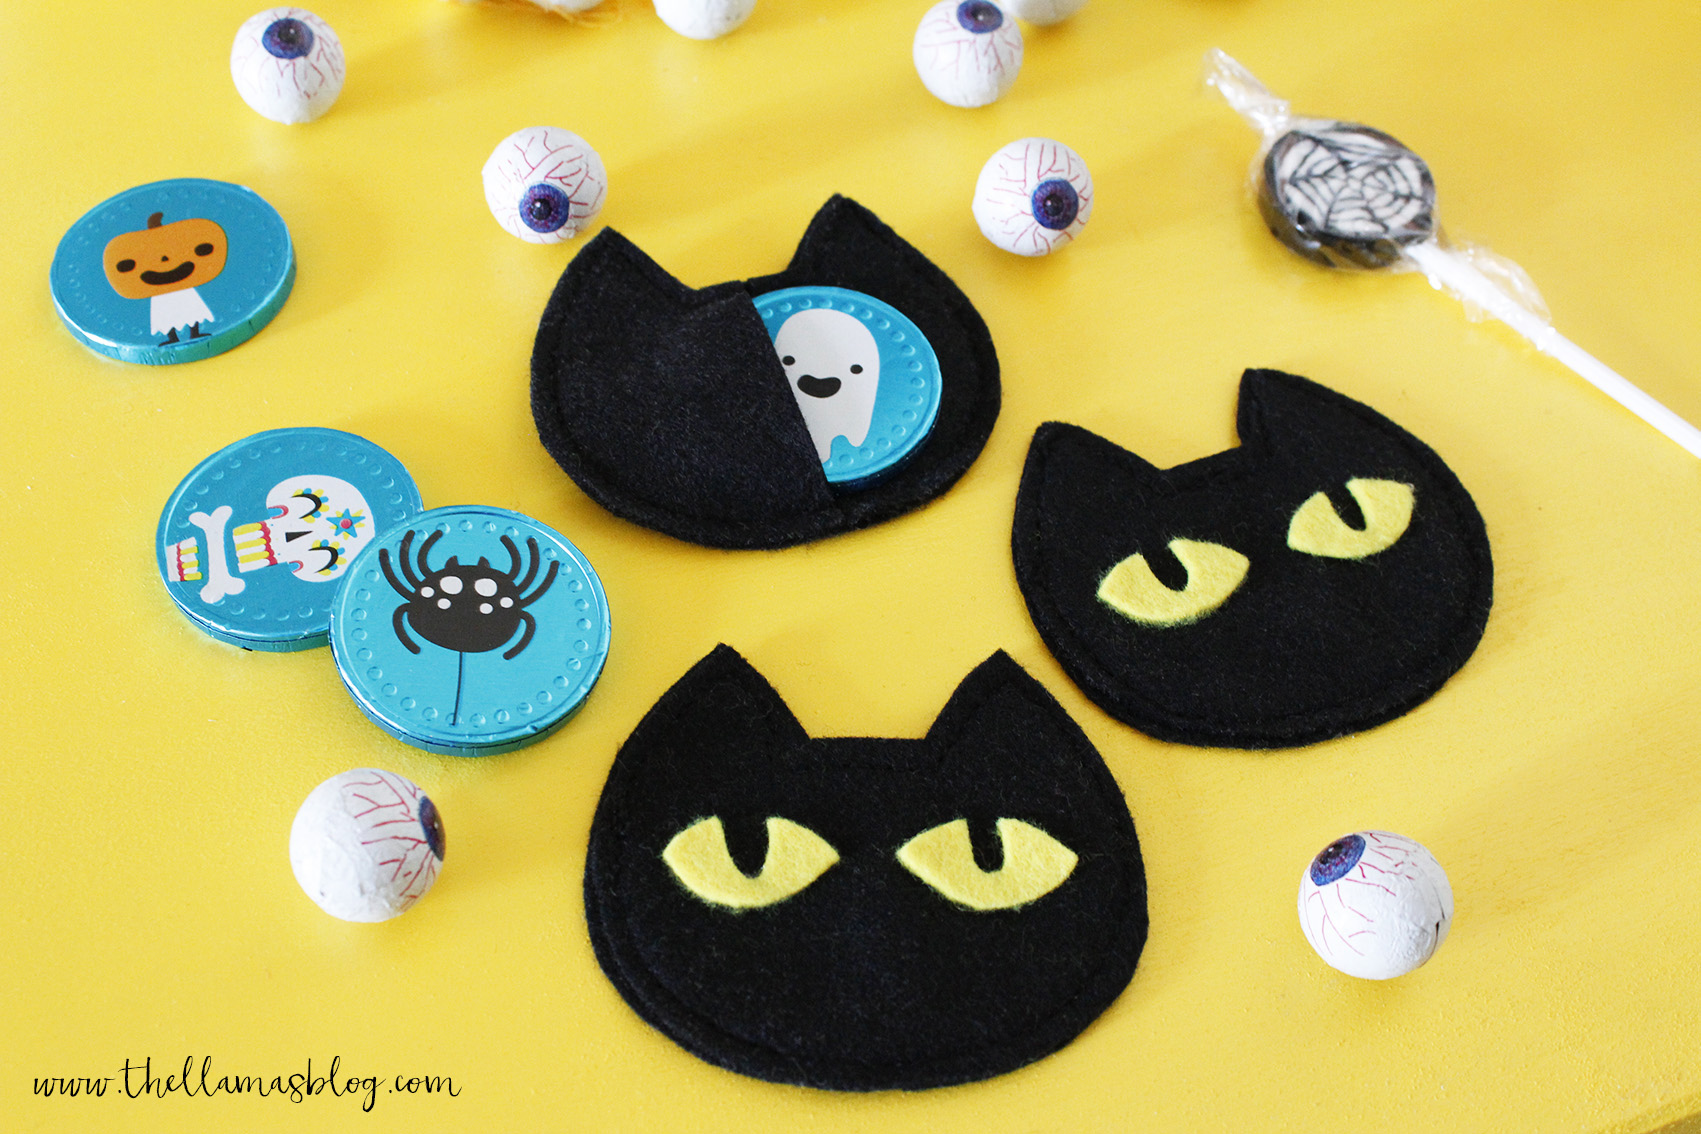 The_llamas_blog_Halloween_cat_treat_bags_6_thellamas